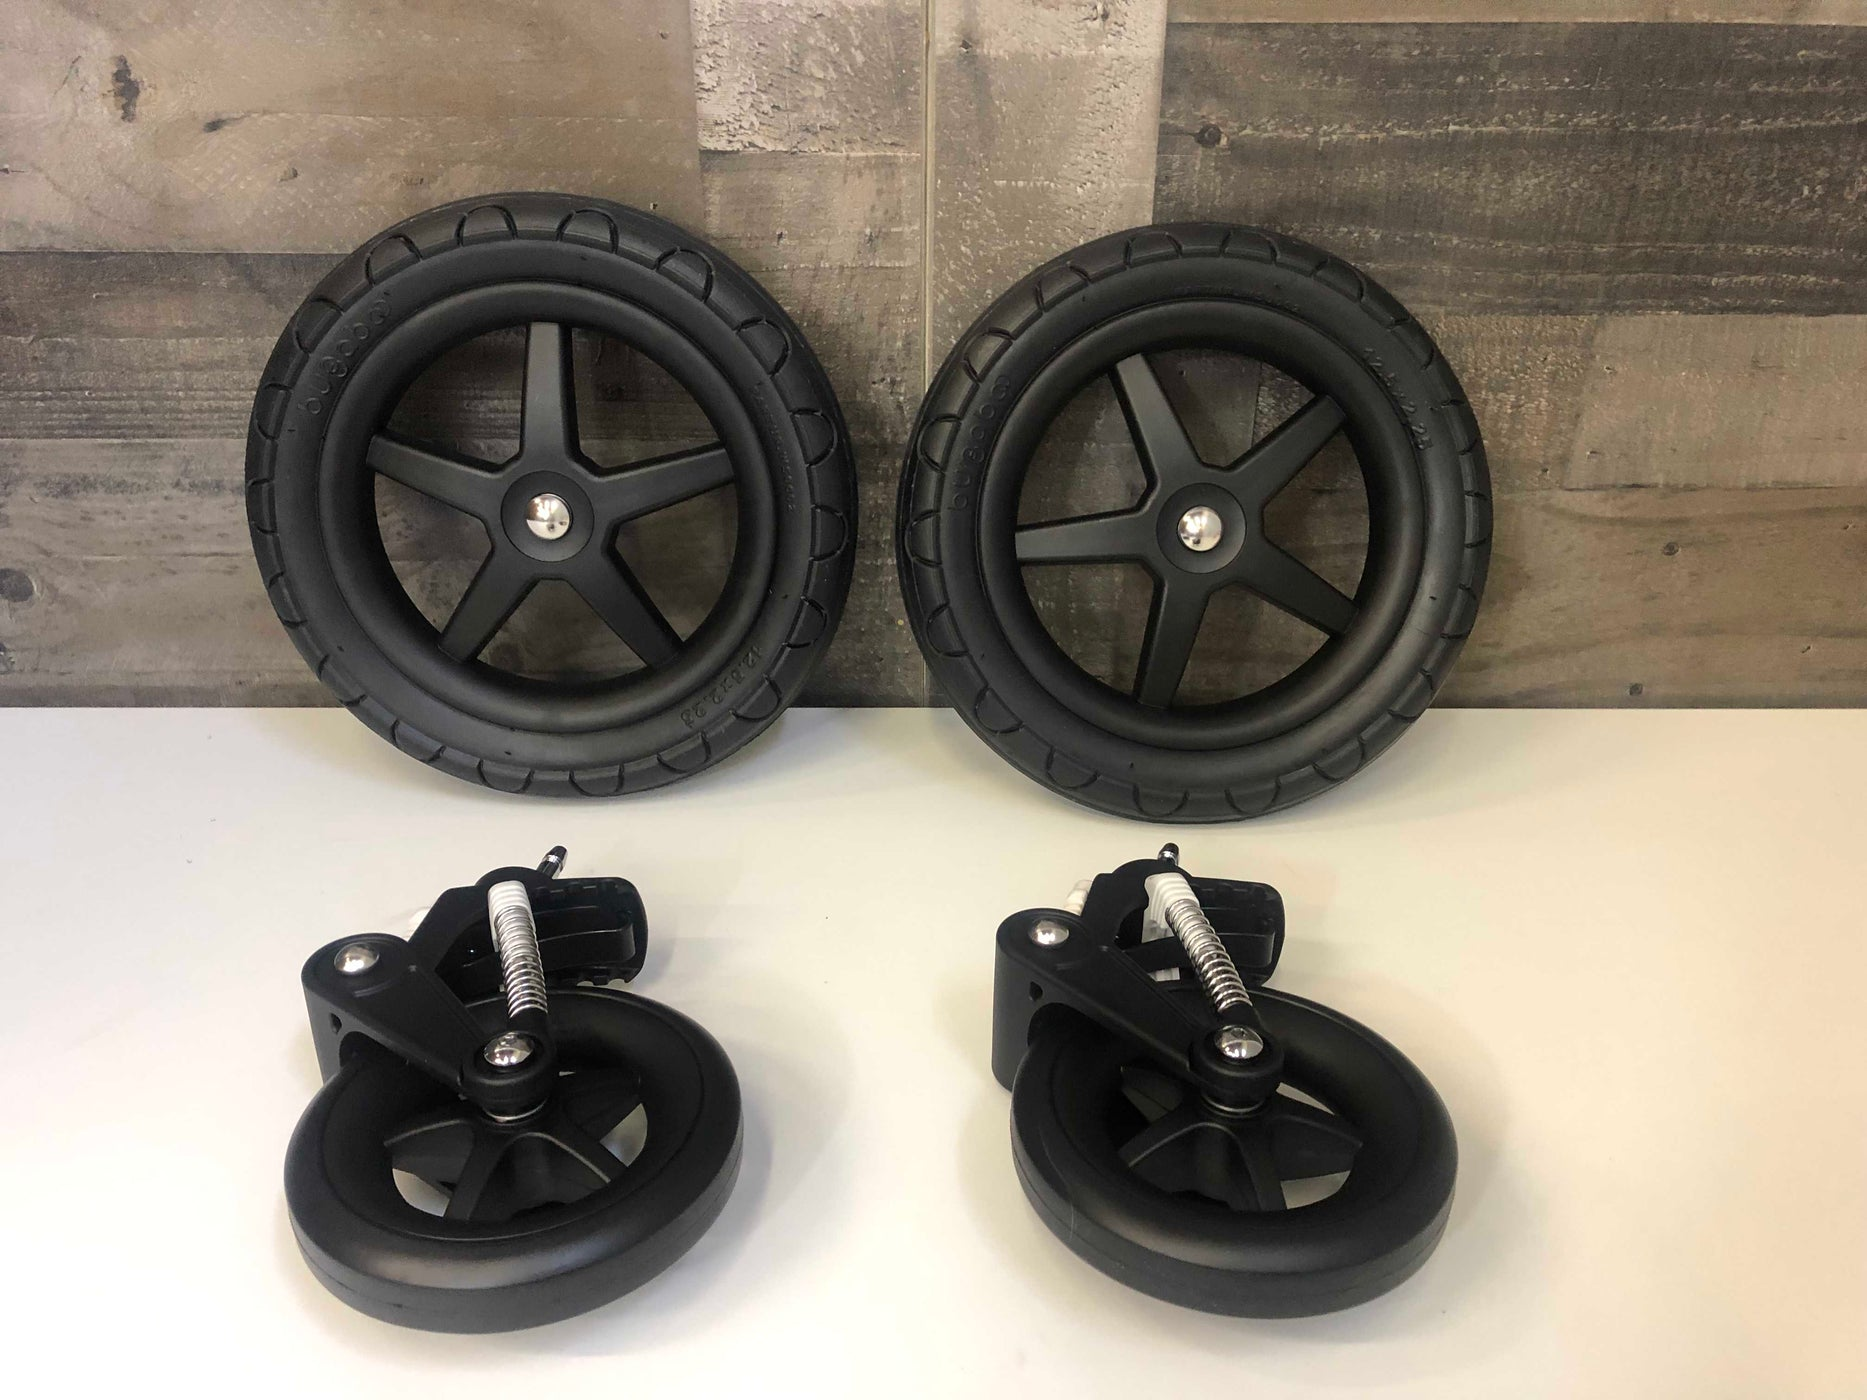 Bugaboo Cameleon 3 Replacement Wheels